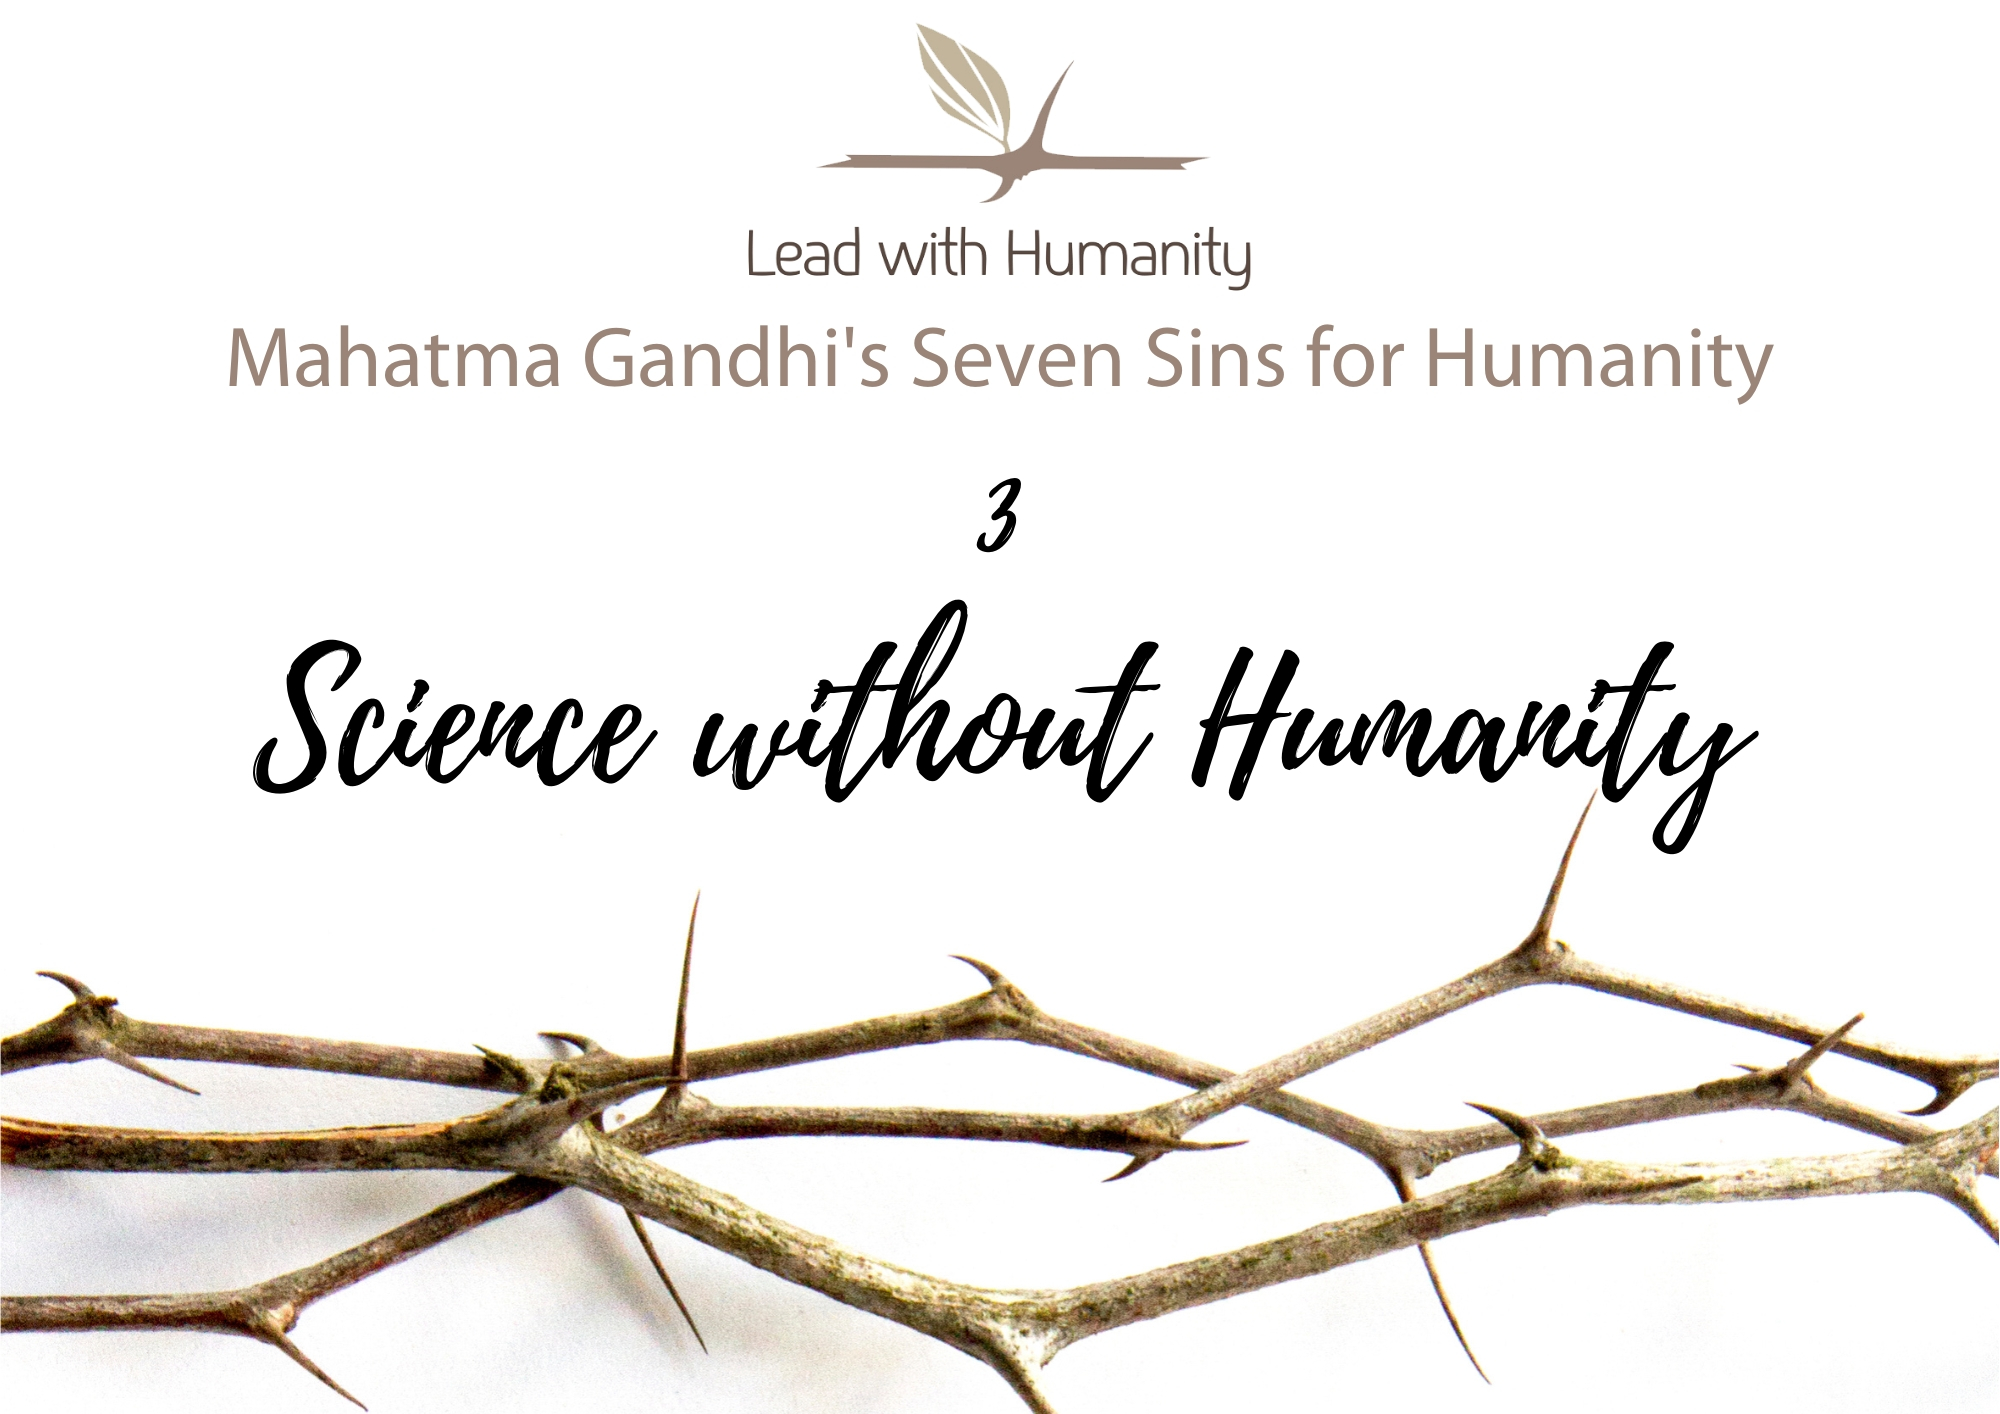 Science without Humanity